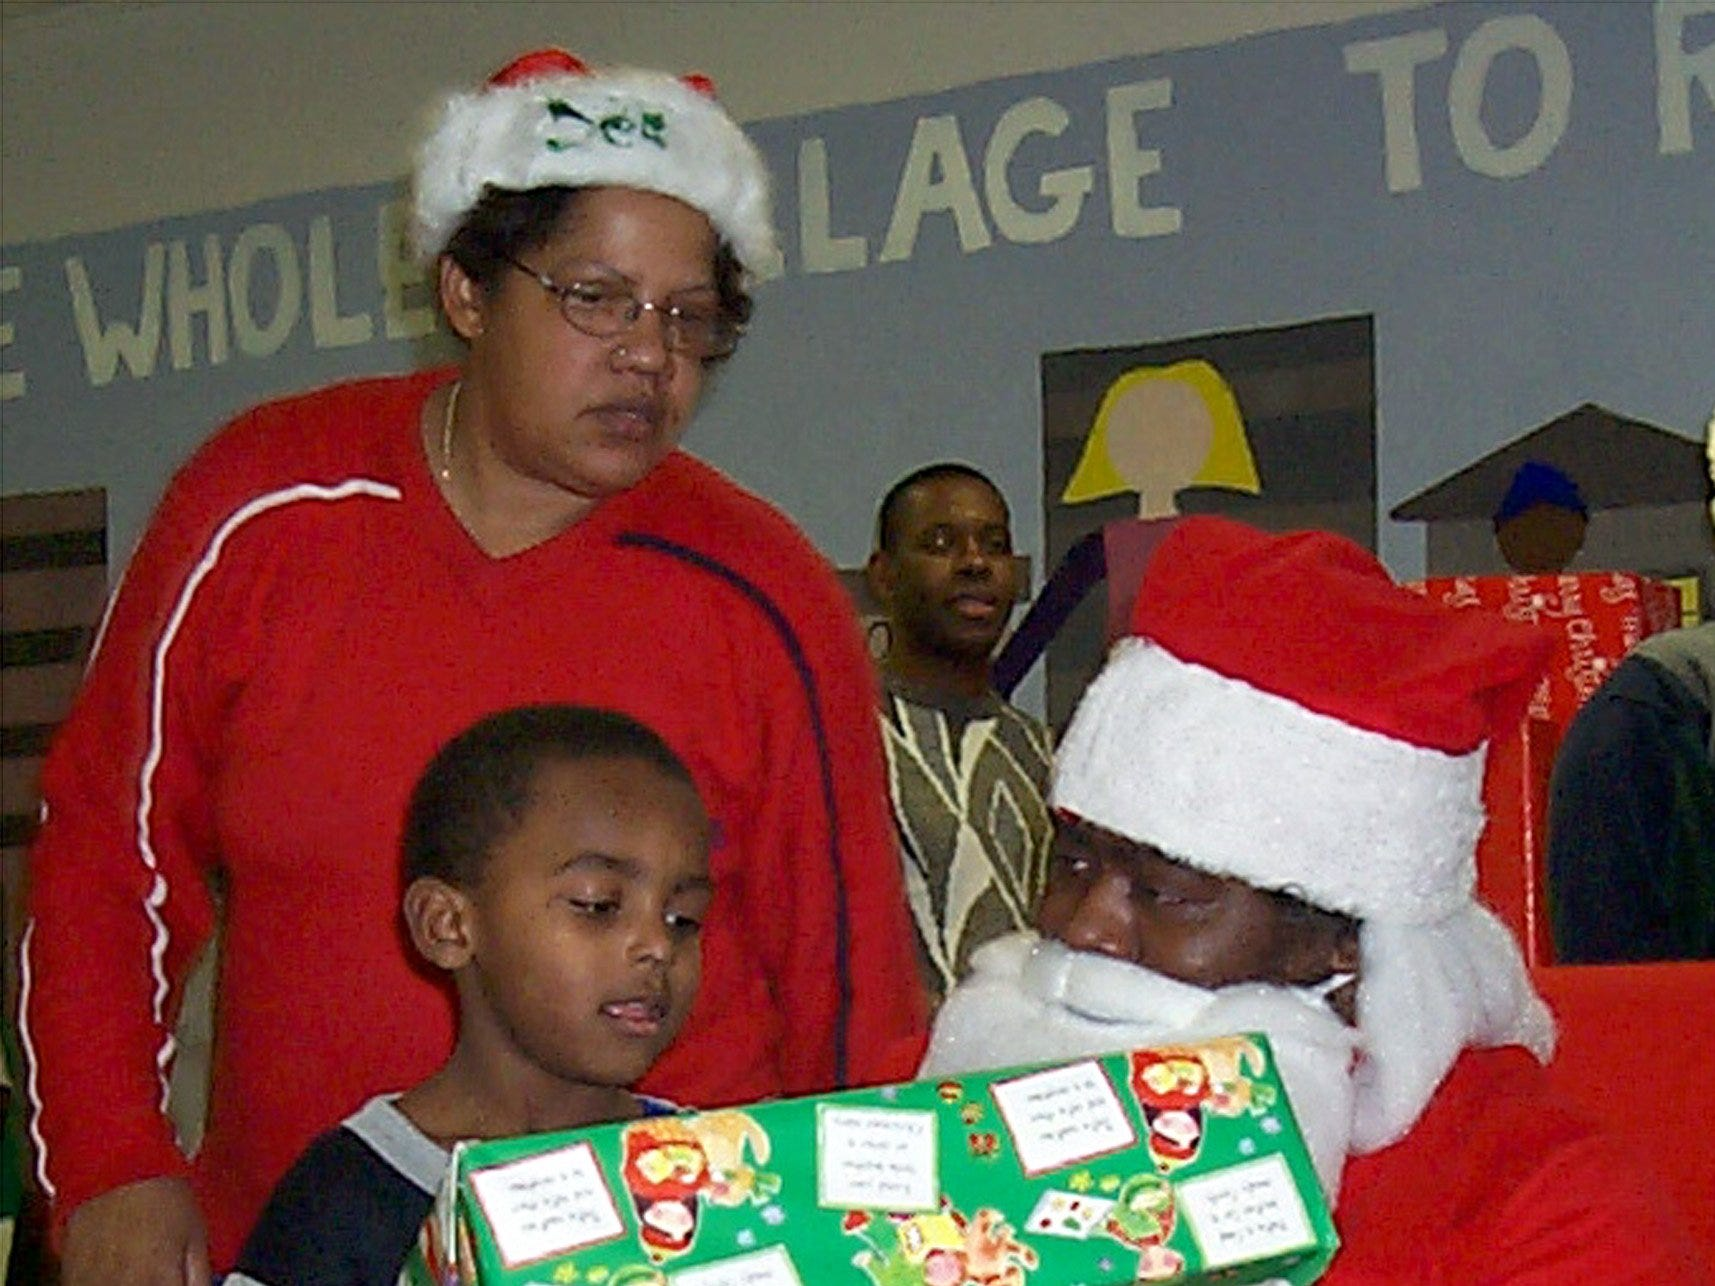 Santa Claus gives a gift to Robert Wilson, 3, of Elmira, on Saturday at the Ernie Davis Community Center's yearly Christmas Magic Party in 2000.